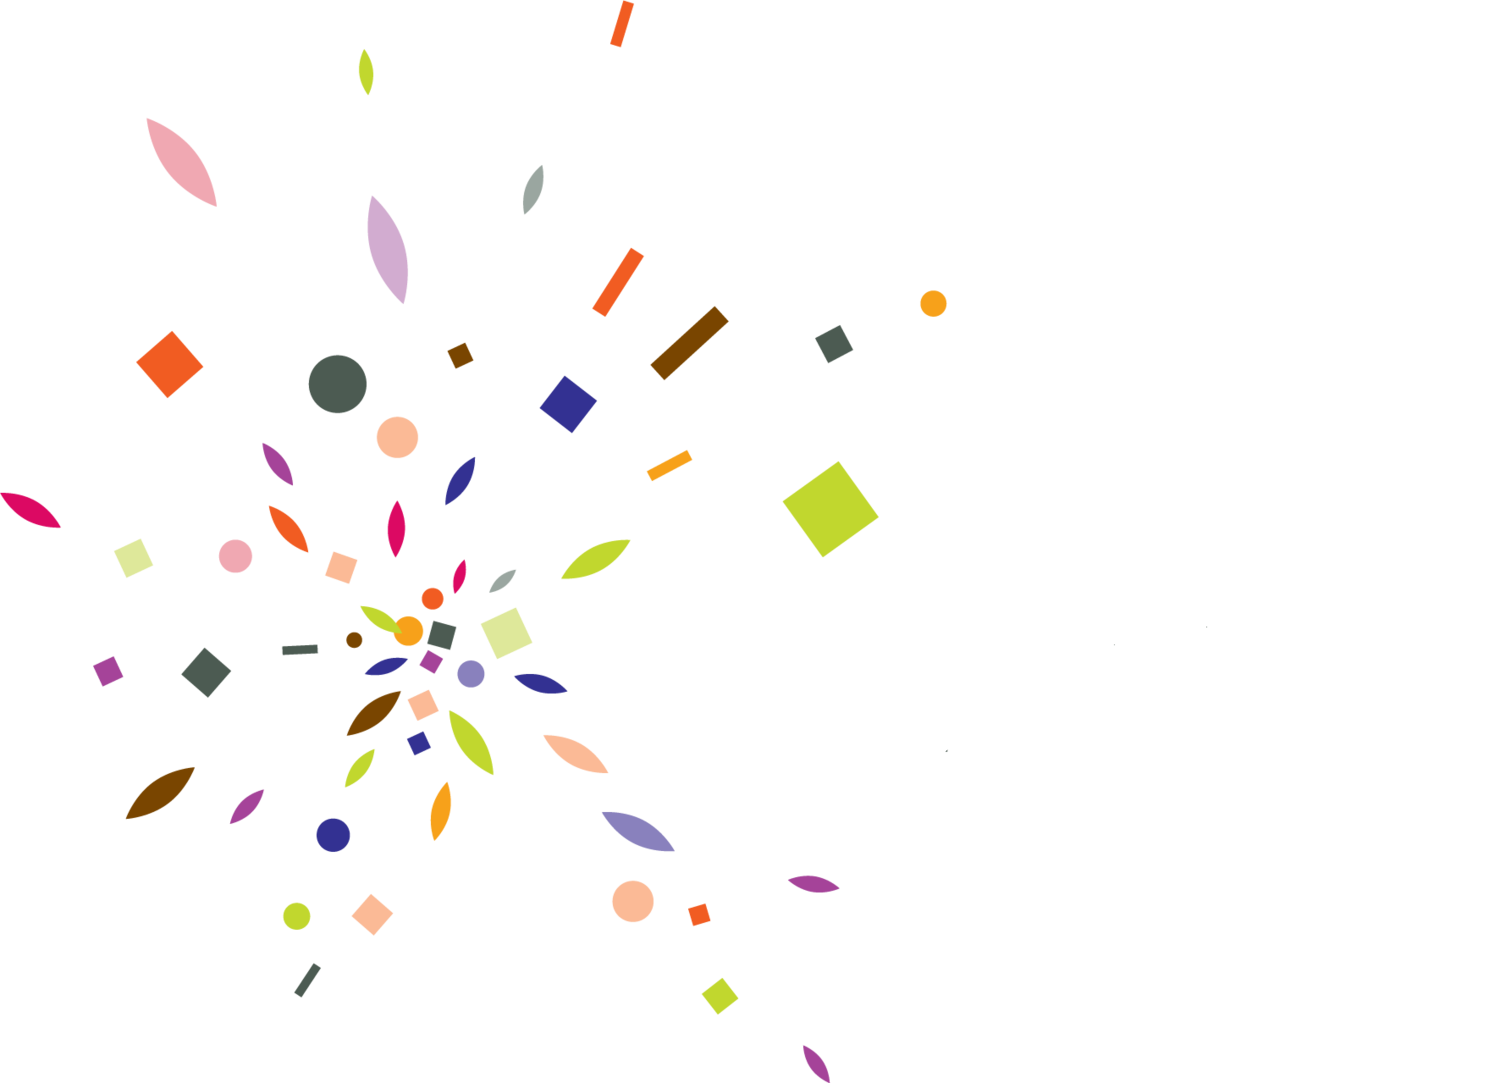 The SparkGroup